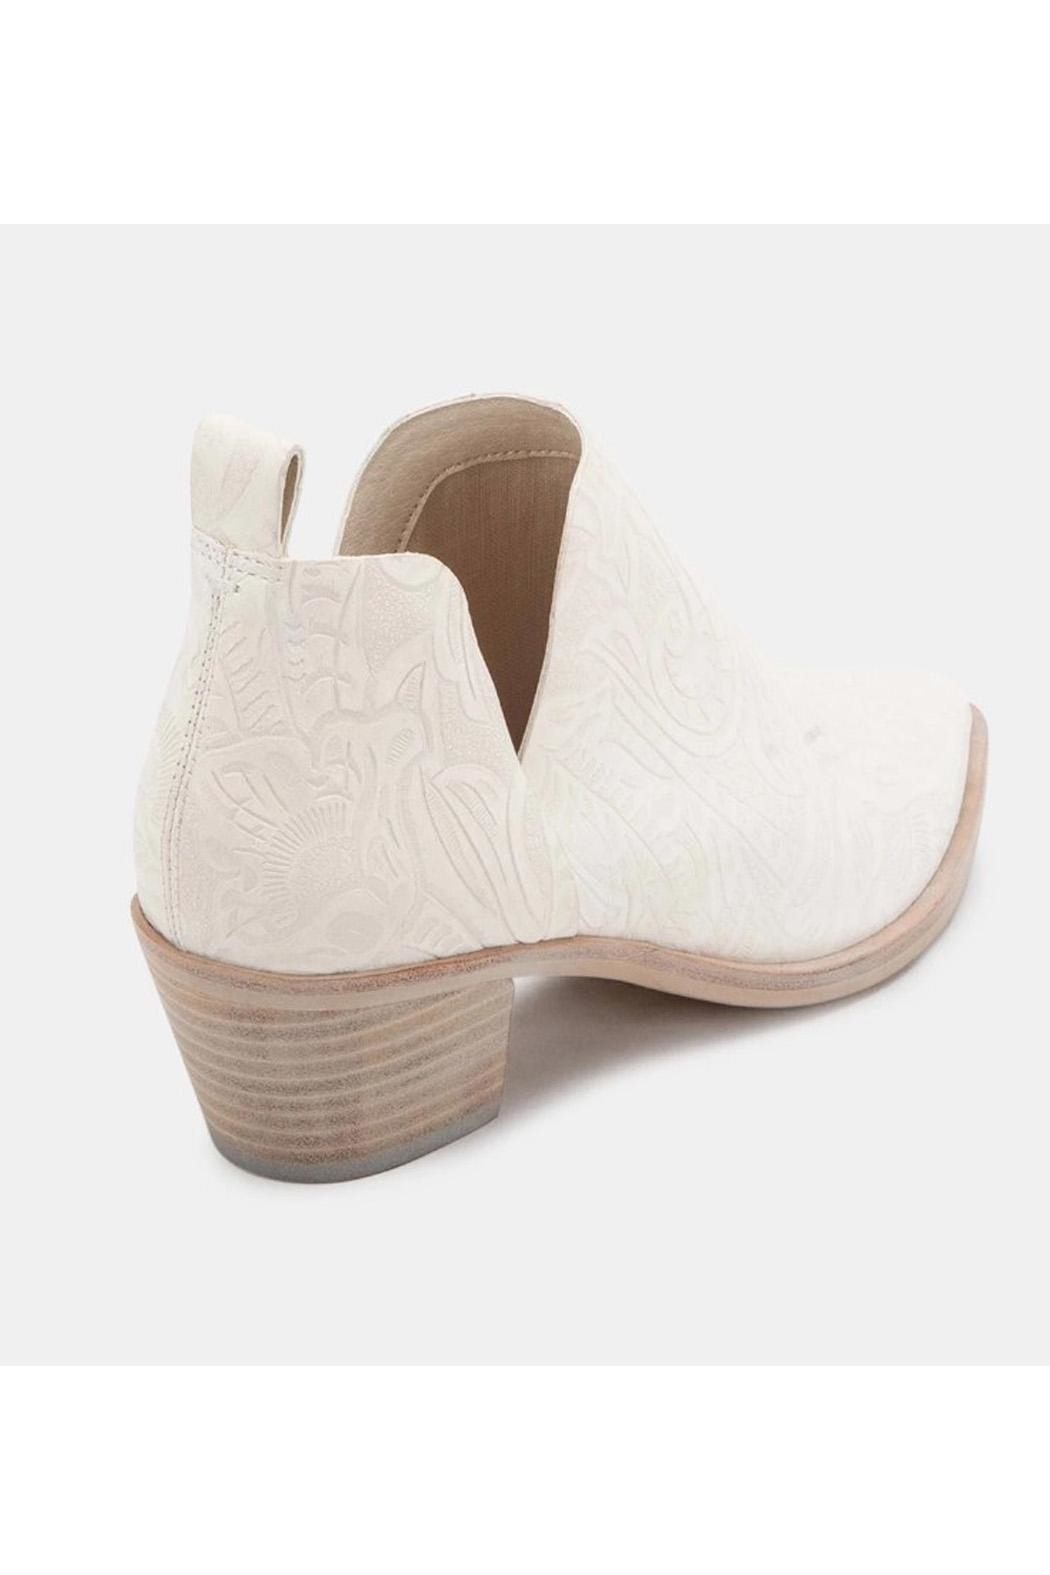 Dolce Vita White Leather Booties - Front Full Image